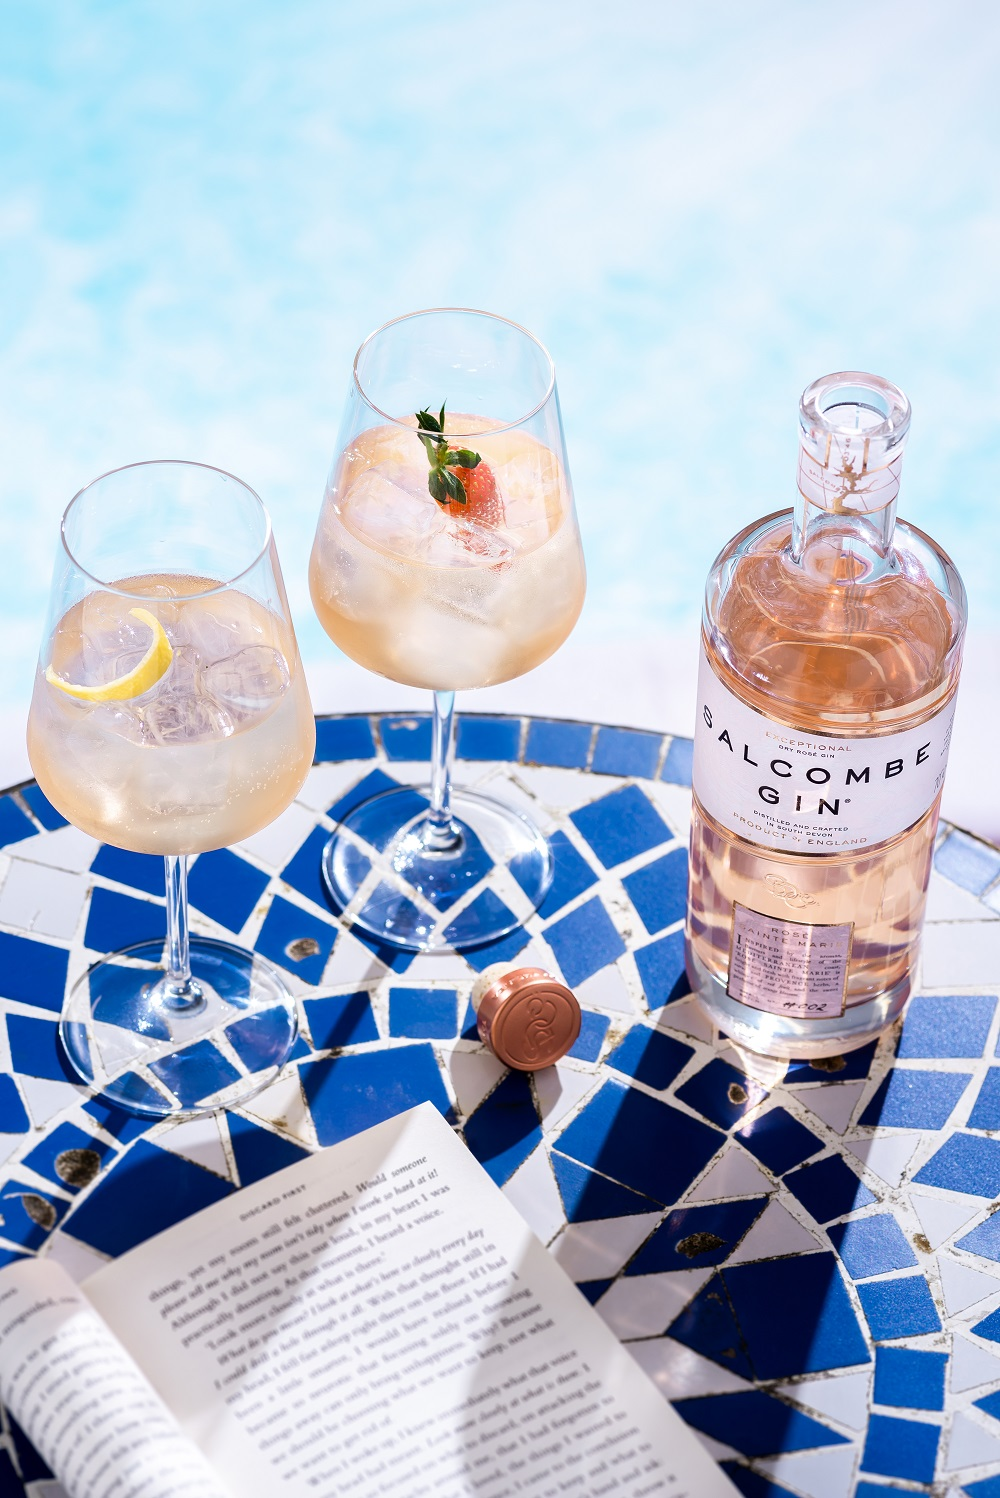 Salcombe Gin Launches Mediterranean Inspired Gin 'Rosé Sainte Marie' for Summer 2019